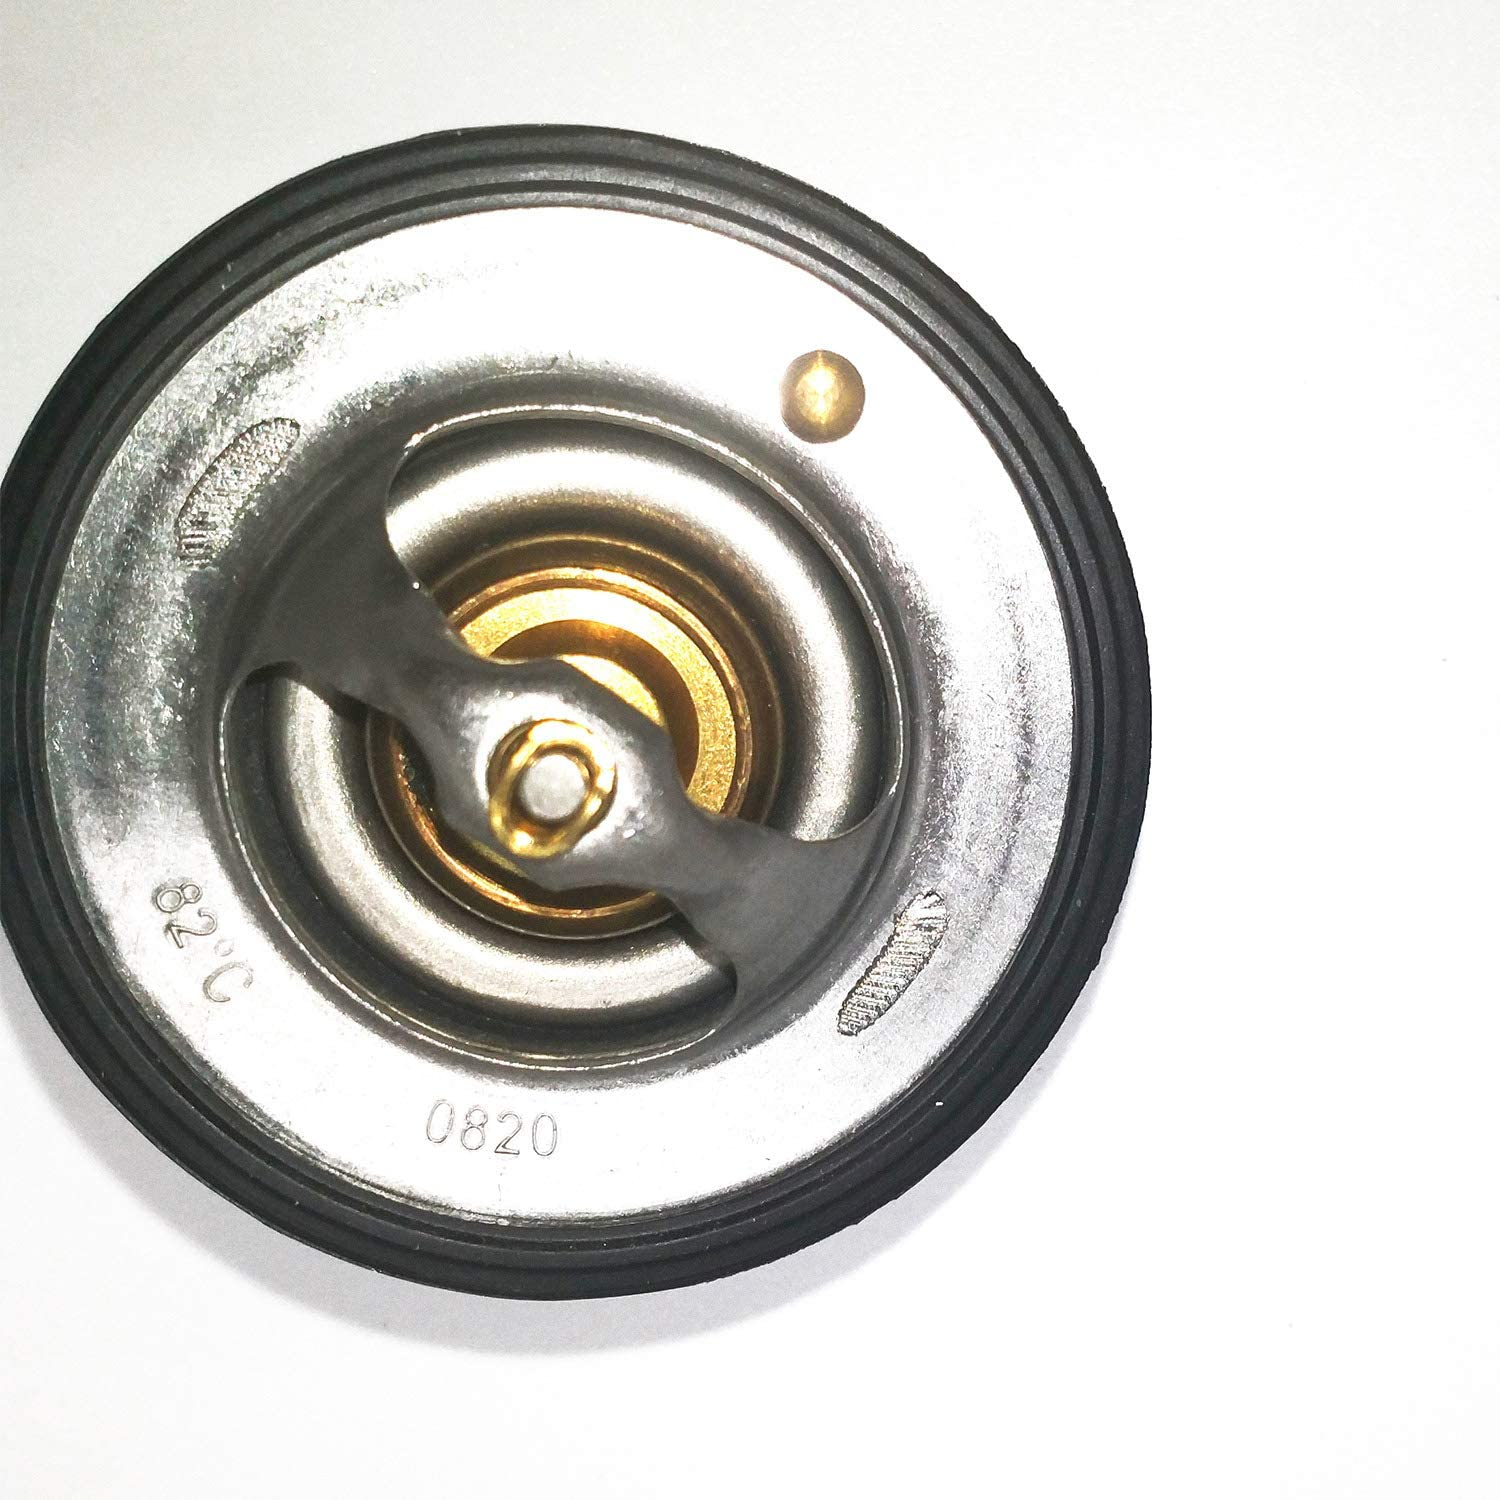 JSD Engine Coolant Thermostat /& Gasket for Lexus ES300 ES330 ES350 GS350 GS450h IS250 LS400 RX300 RX330 RX350 RX400h RX450h Scion tC xB Toyota 4Runner Avalon Camry Celica Corolla 1632562010